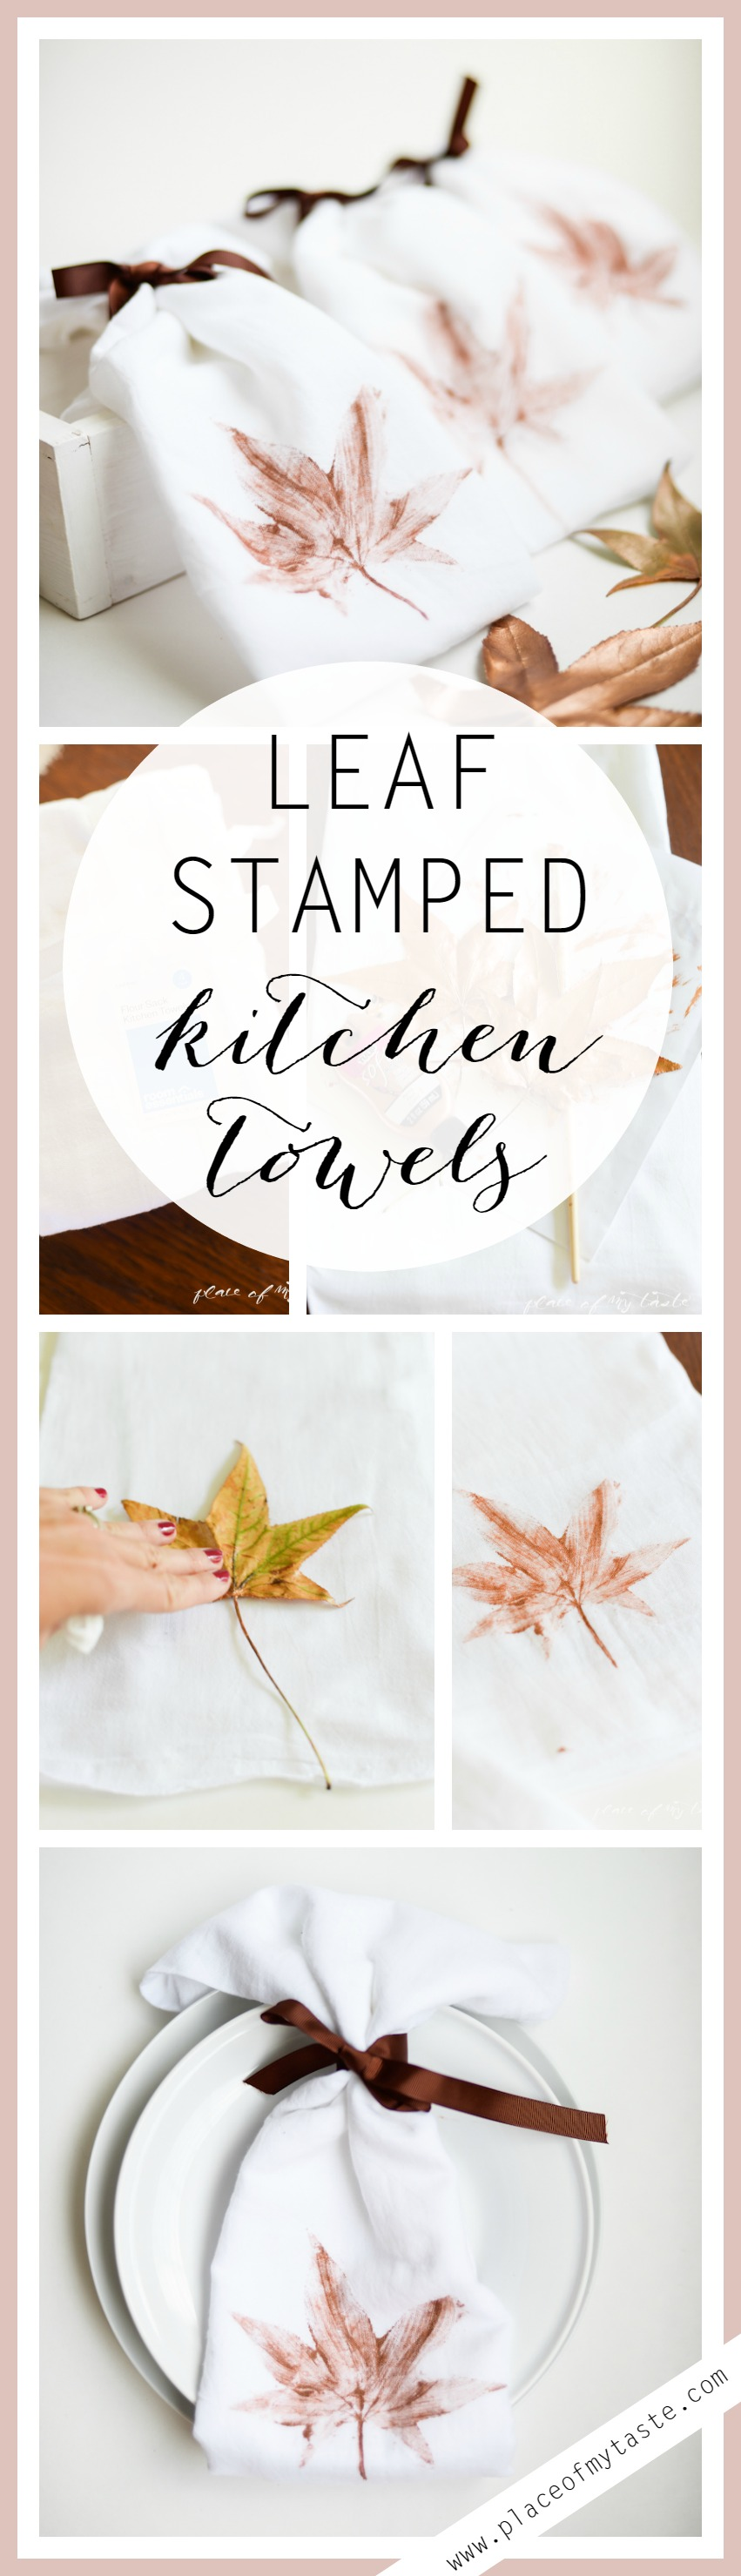 DIY LEAF STAMPED KITCHEN TOWELS - Placeofmytaste.com